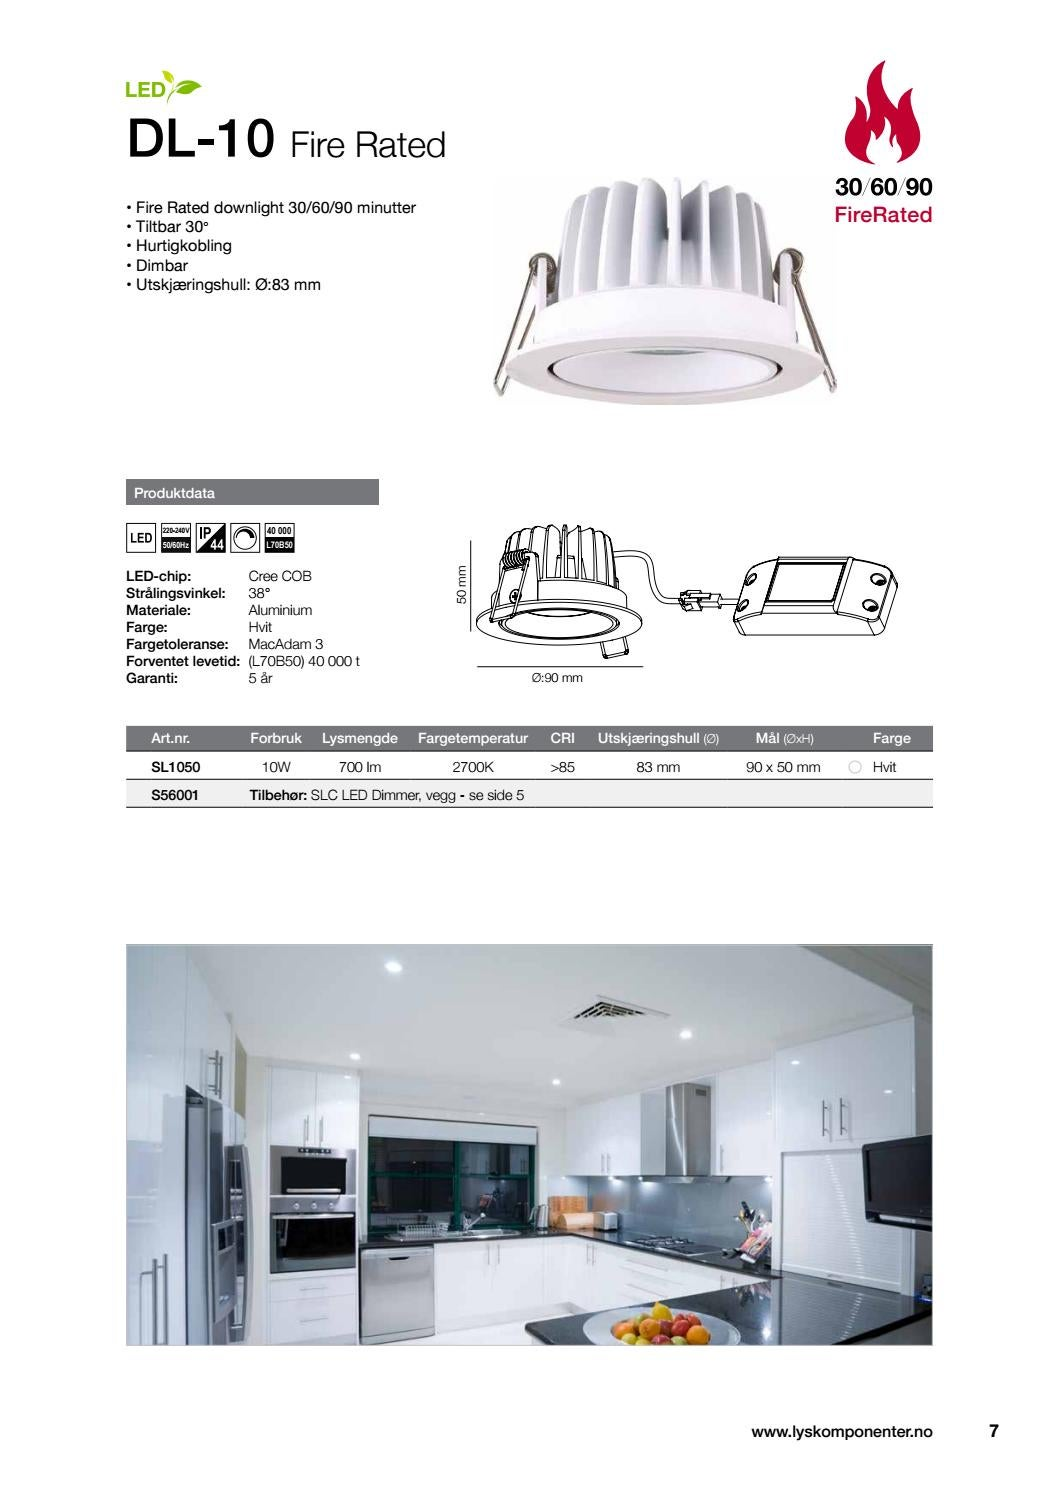 Design Dimbar Downlights Fra Lyskomponenter By Lyskomponeter As Issuu